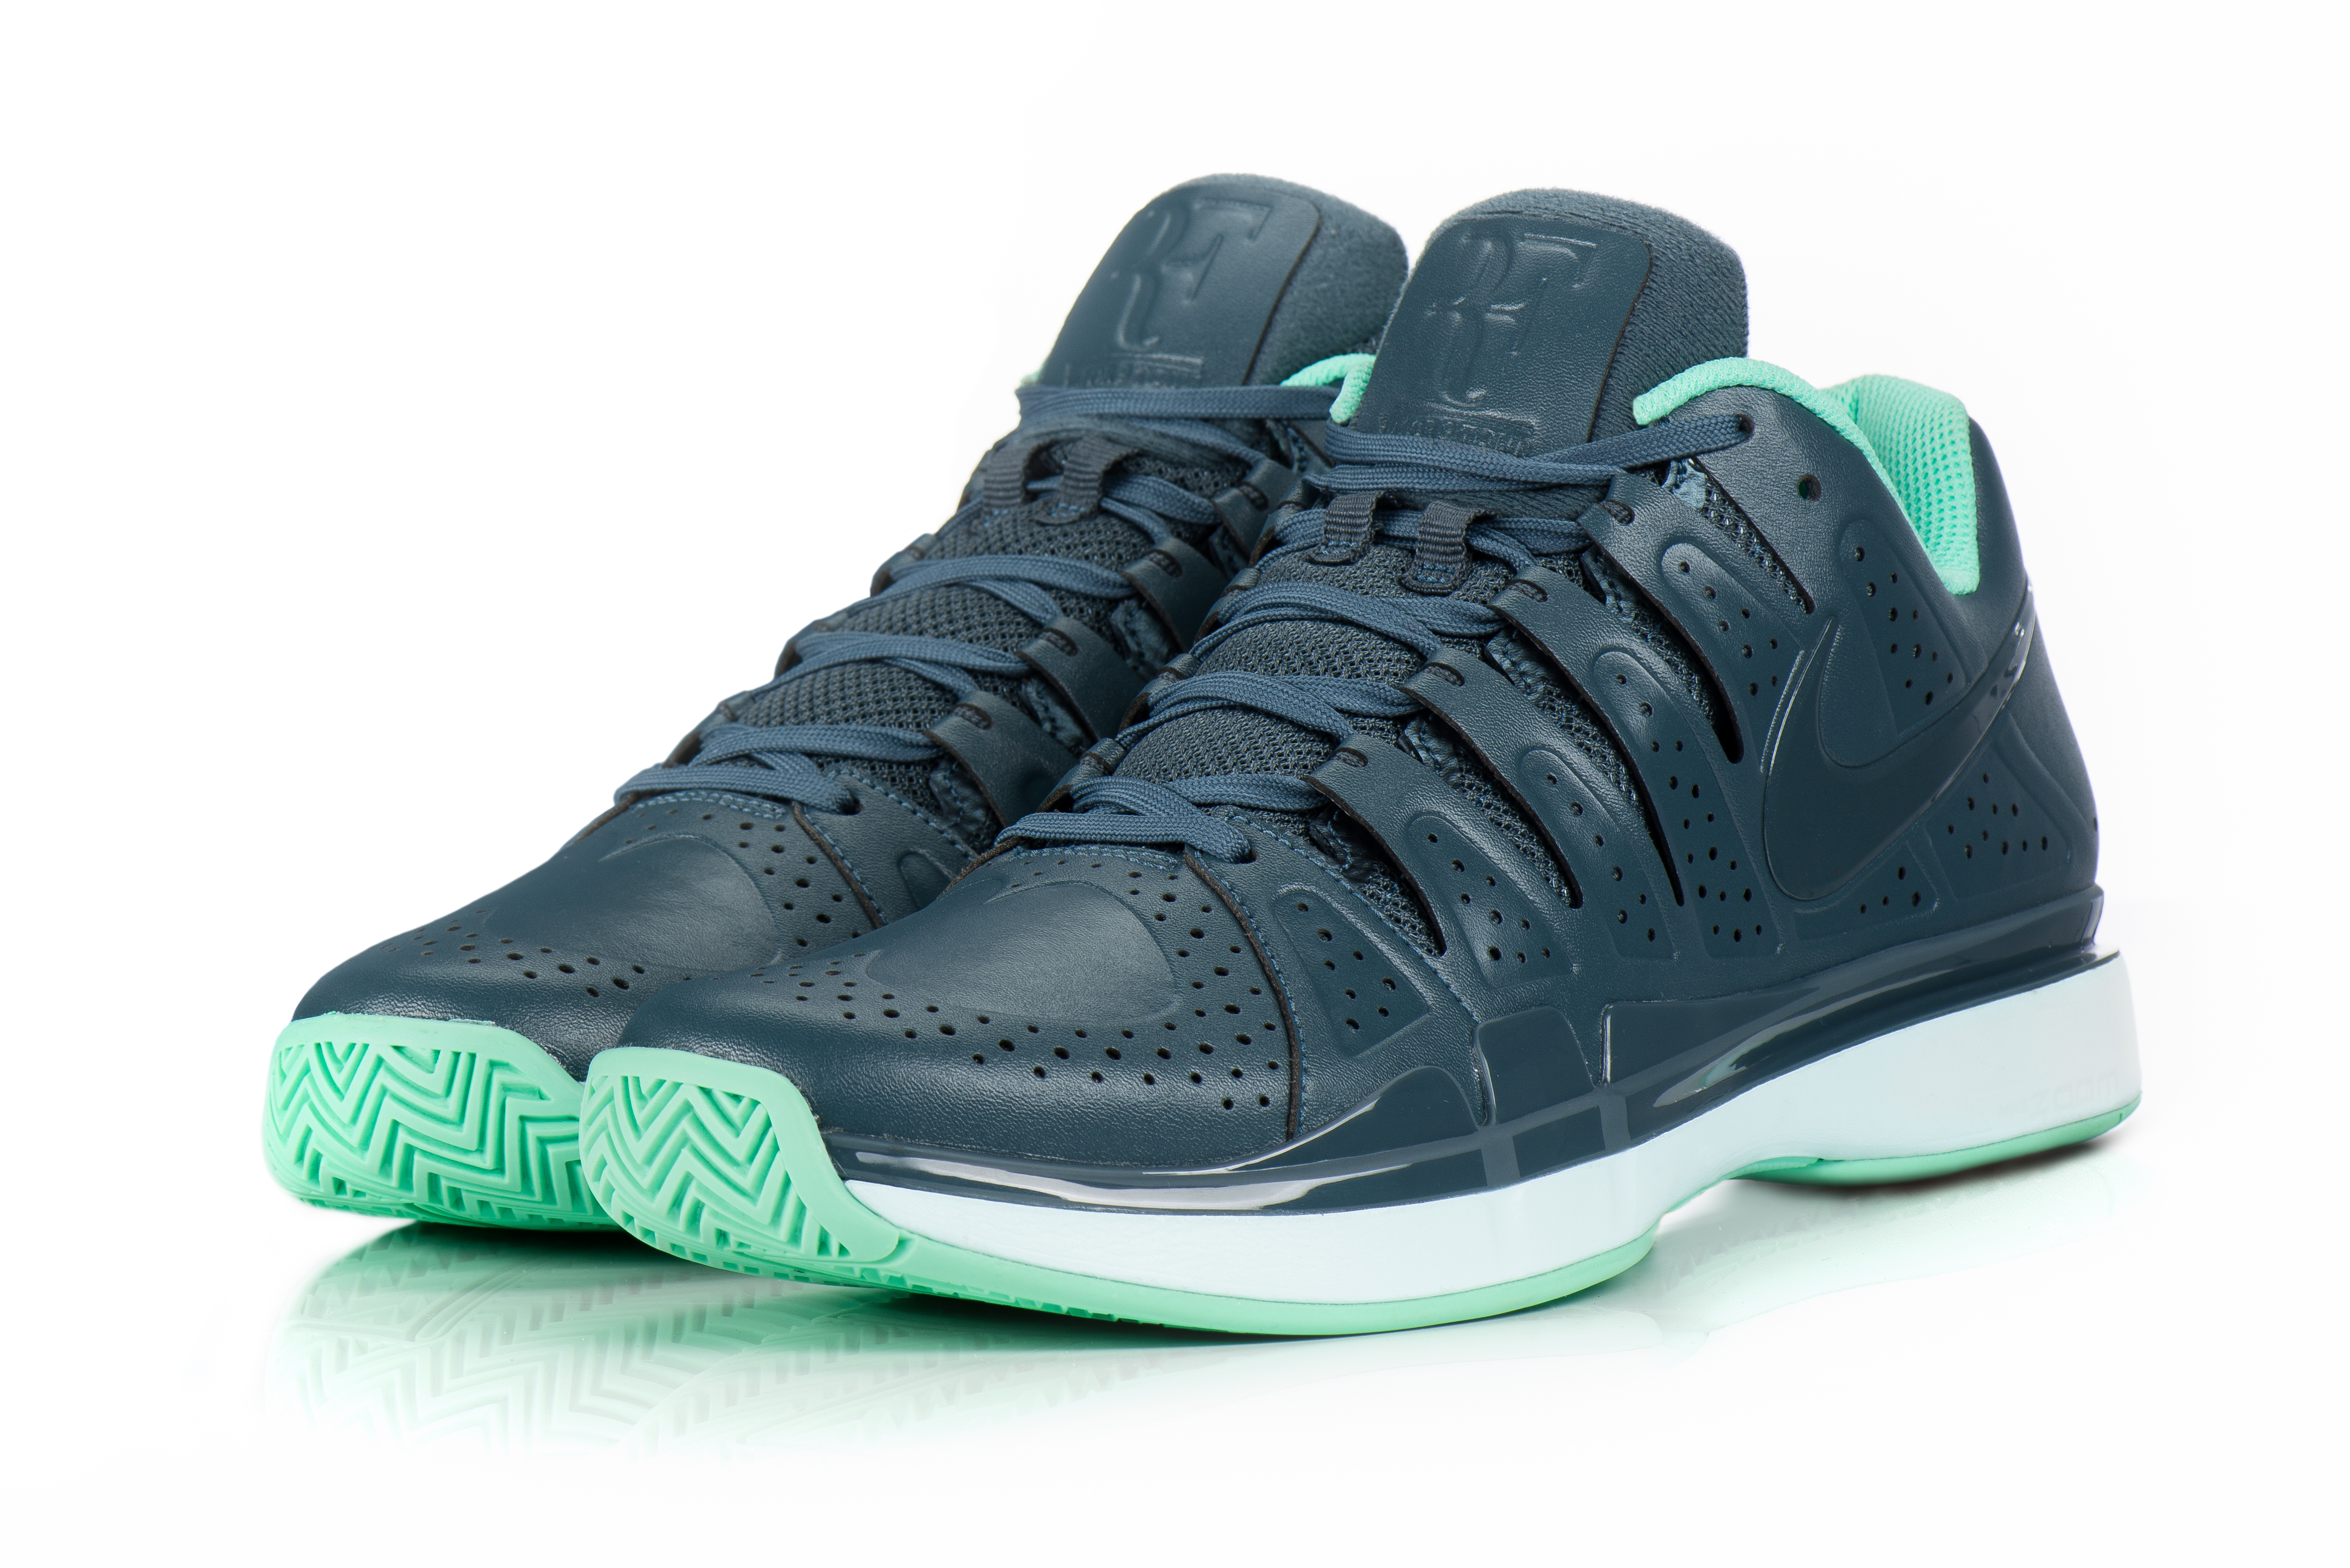 nike tennis shoes limited edition